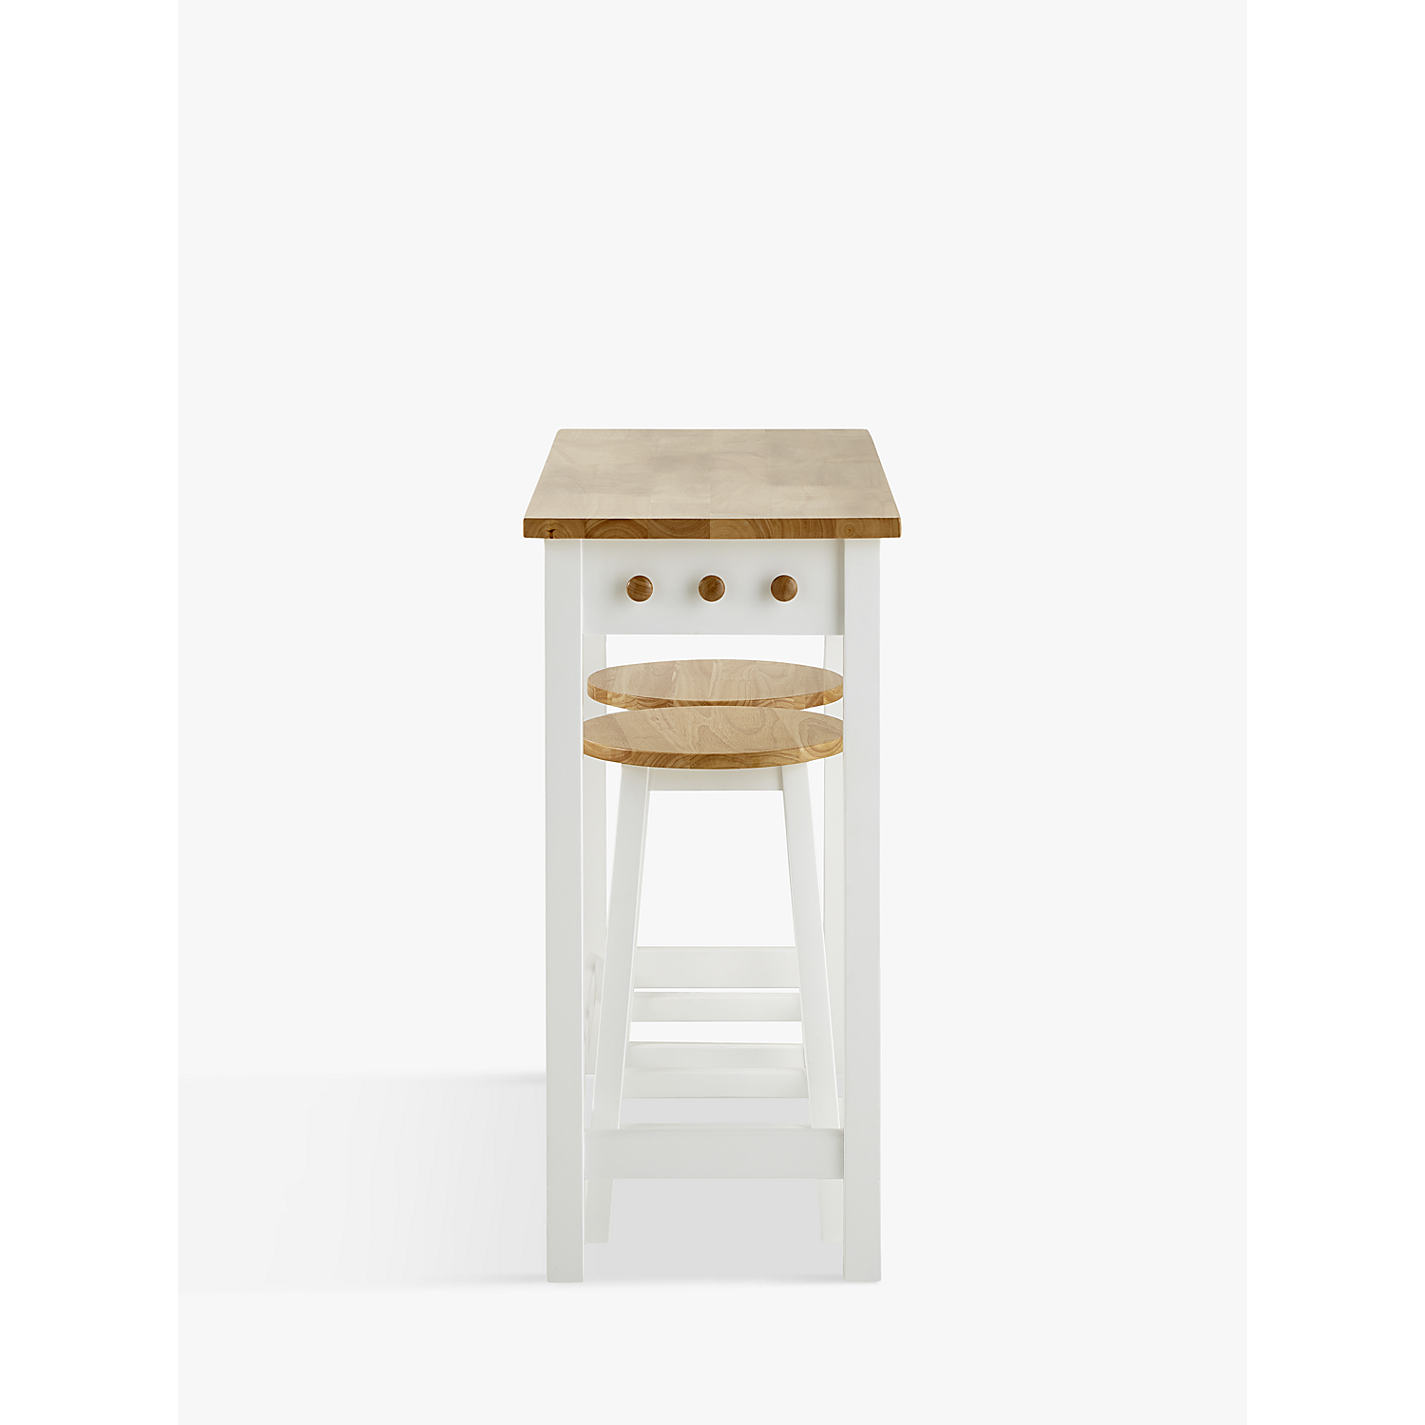 buy john lewis adler bar table u0026 stools cream online at